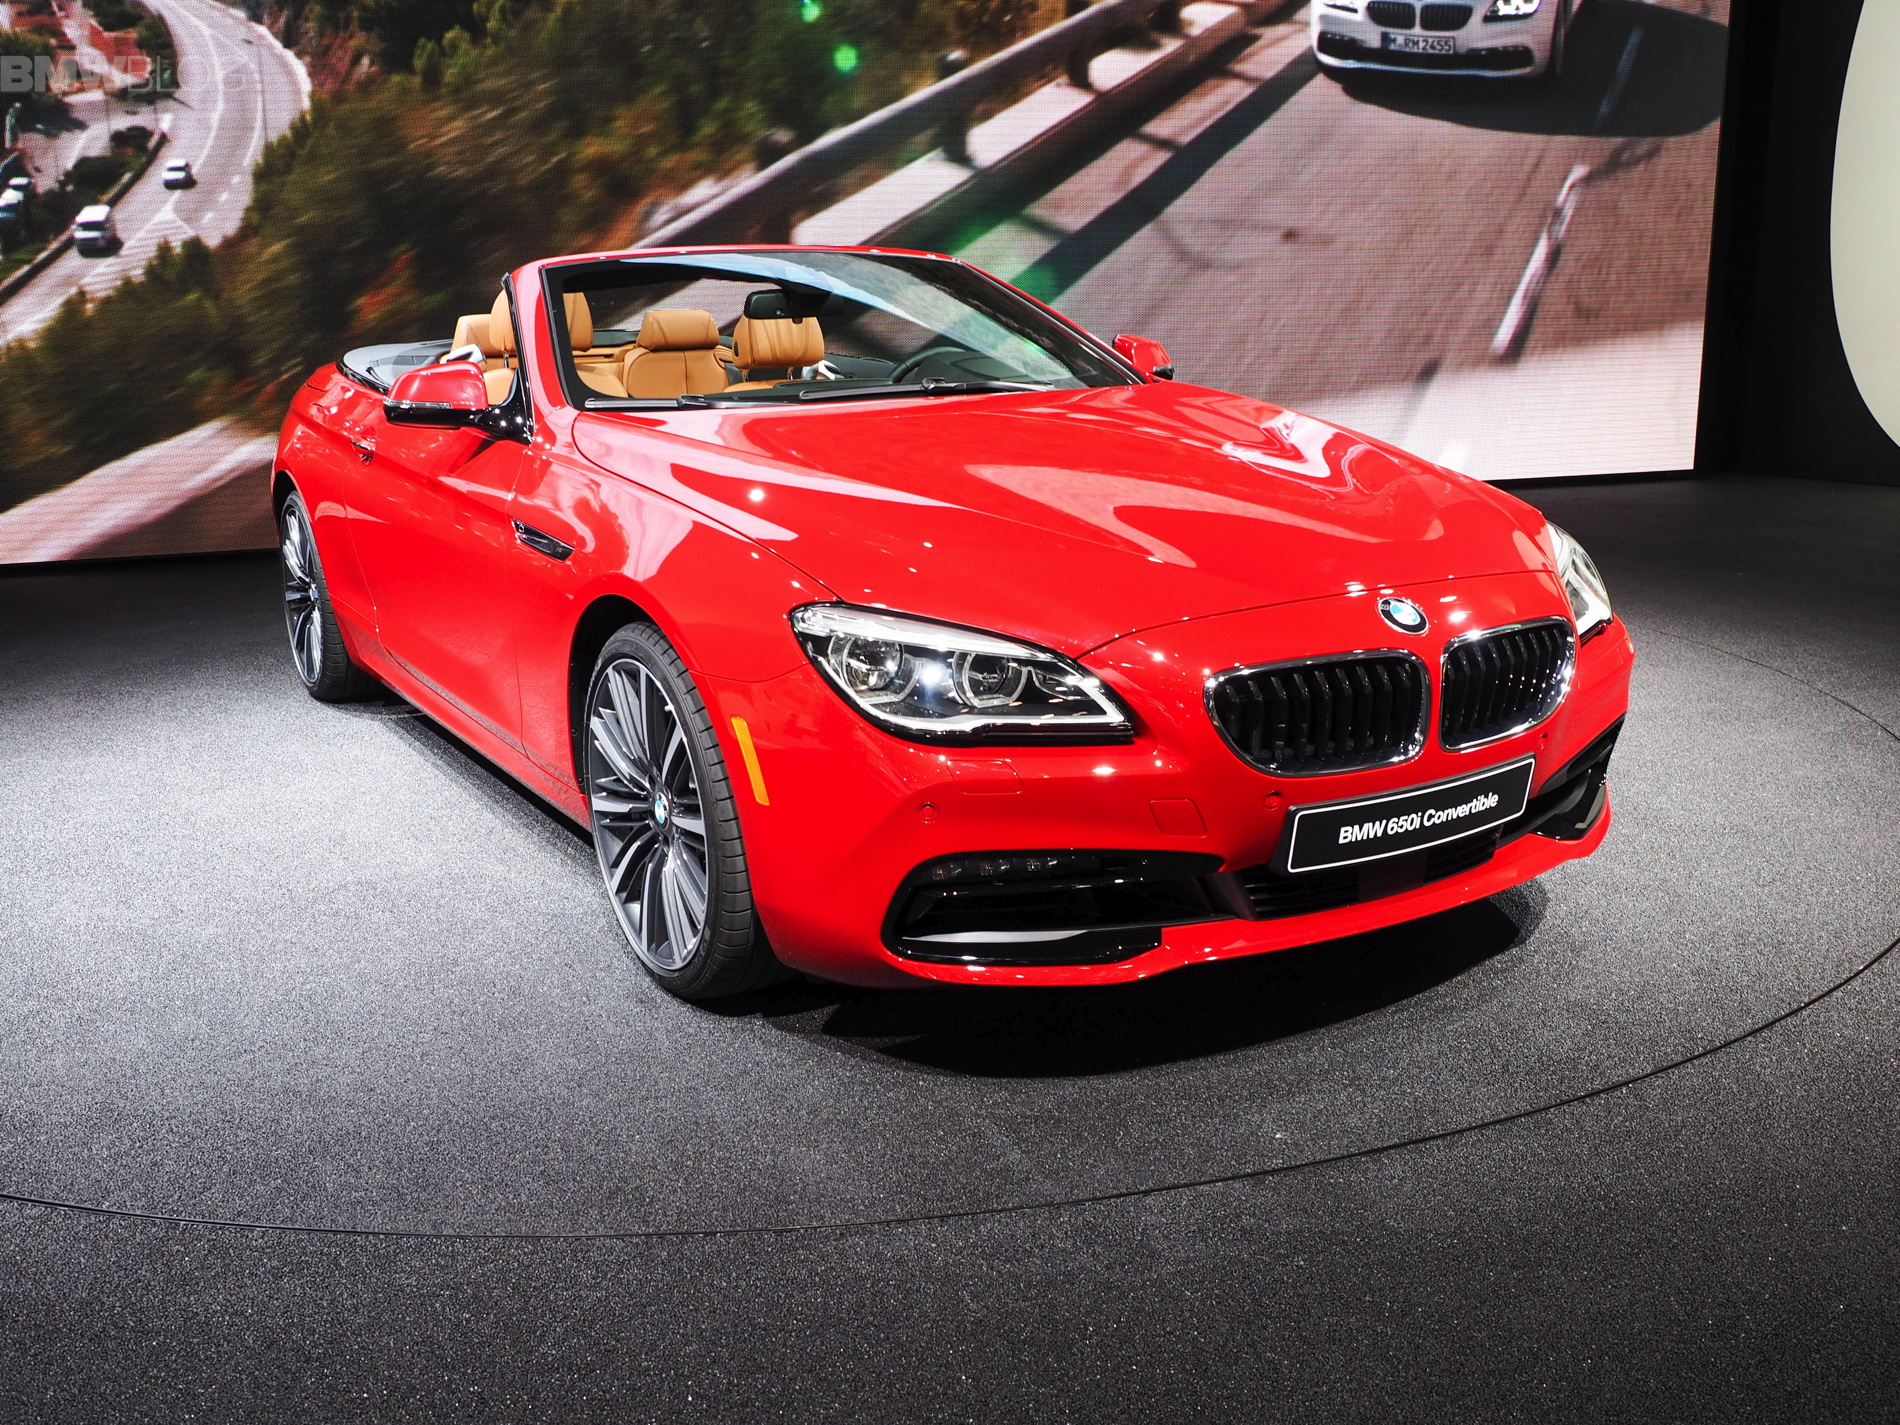 2015 naias bmw 6 series convertible facelift. Black Bedroom Furniture Sets. Home Design Ideas